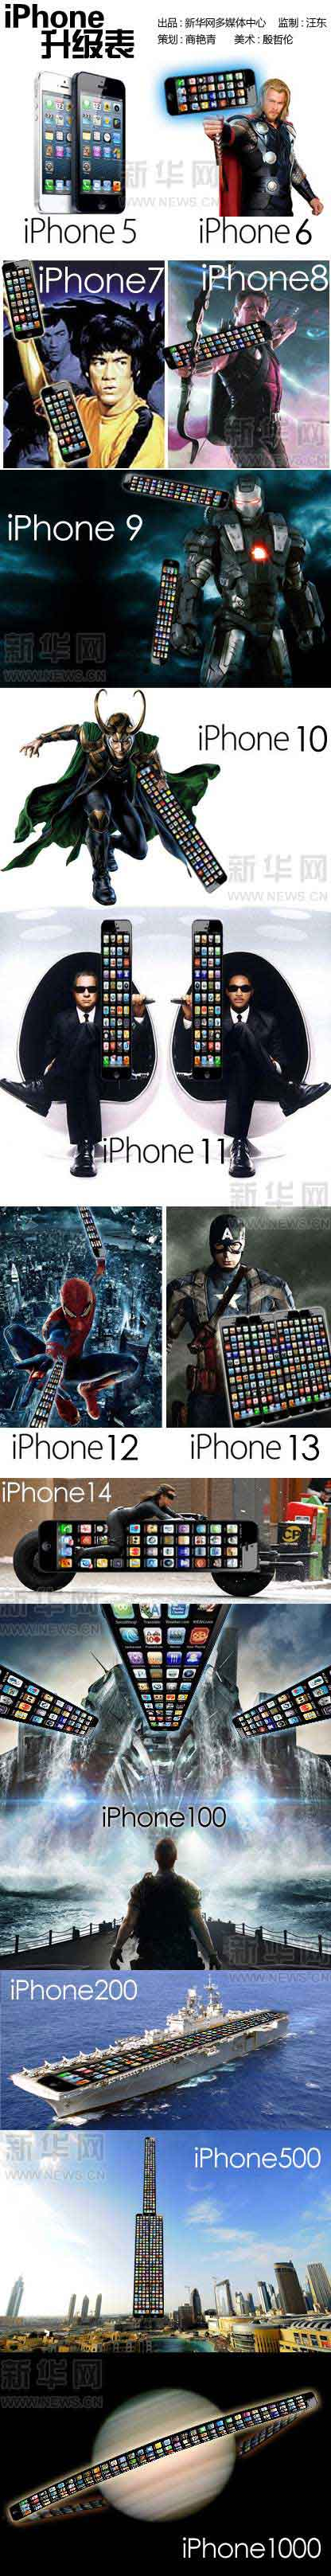 Netizens joke about the 4-Inch iPhone - People's Daily Online